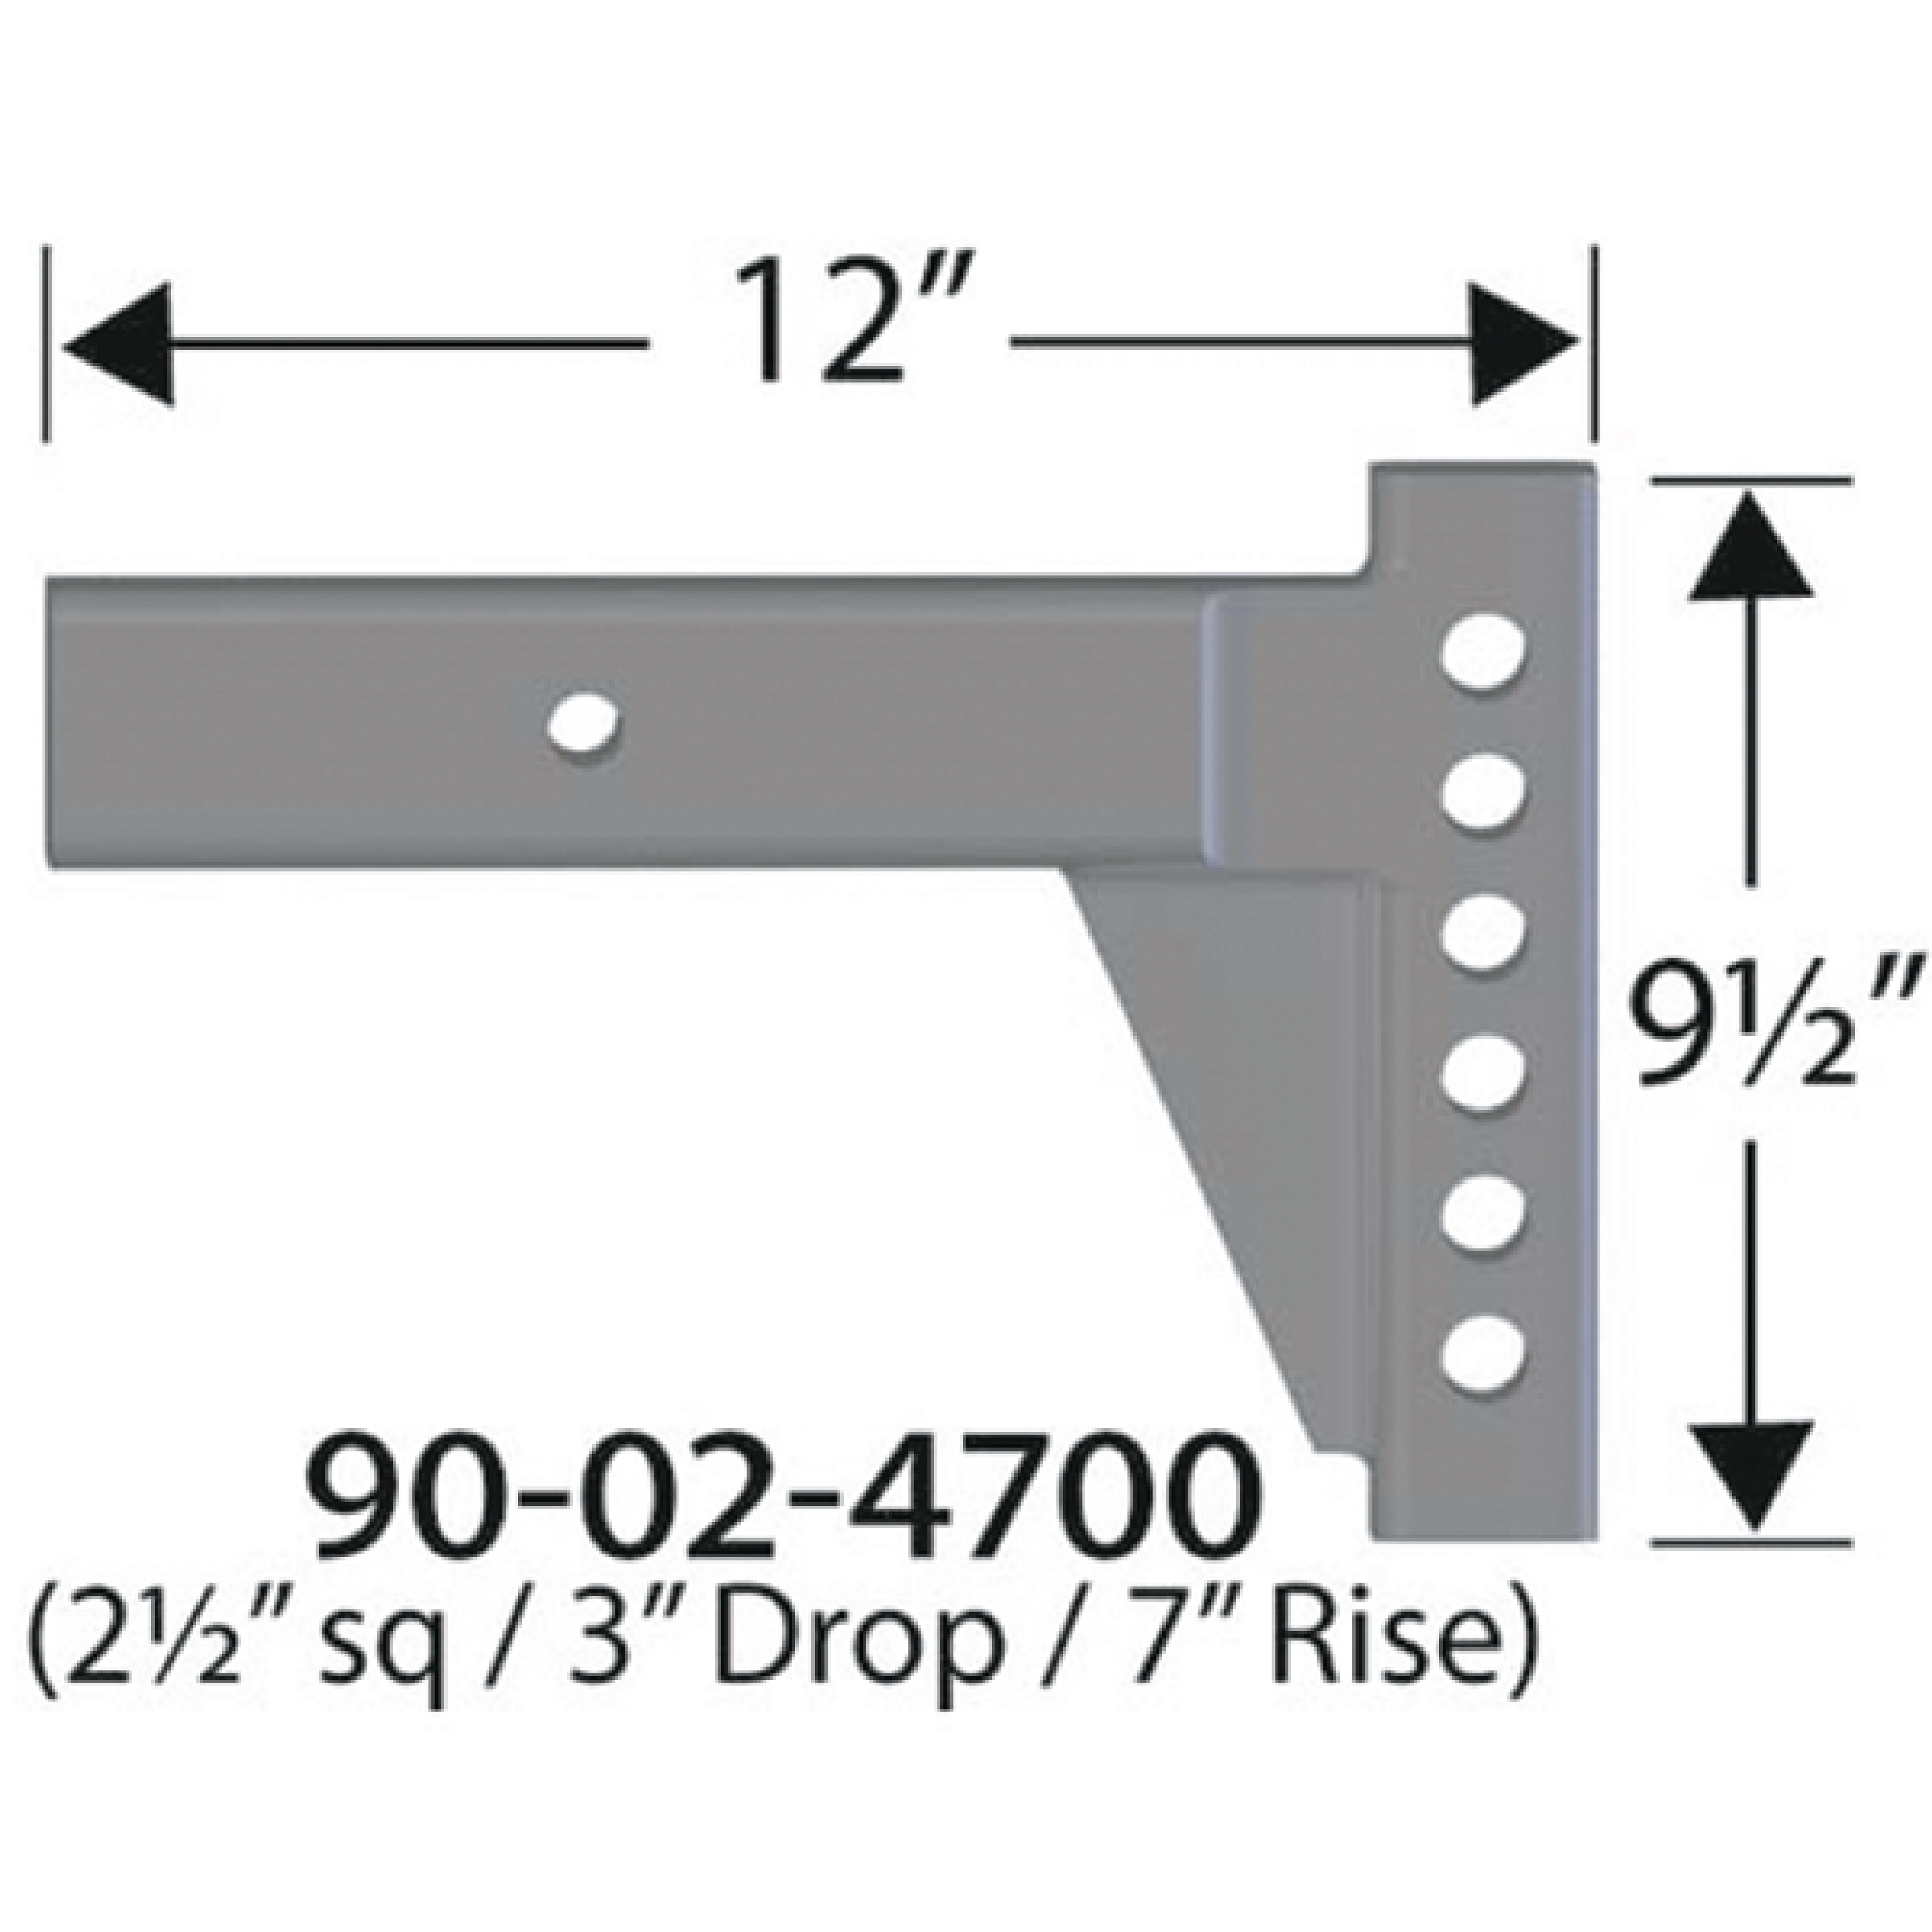 "Progress Mfg 90-02-4700 Equal-i-zer 2-1/2"" Adjustable RV Shank - 3"" Drop, 7"" Rise & 12"" Length"